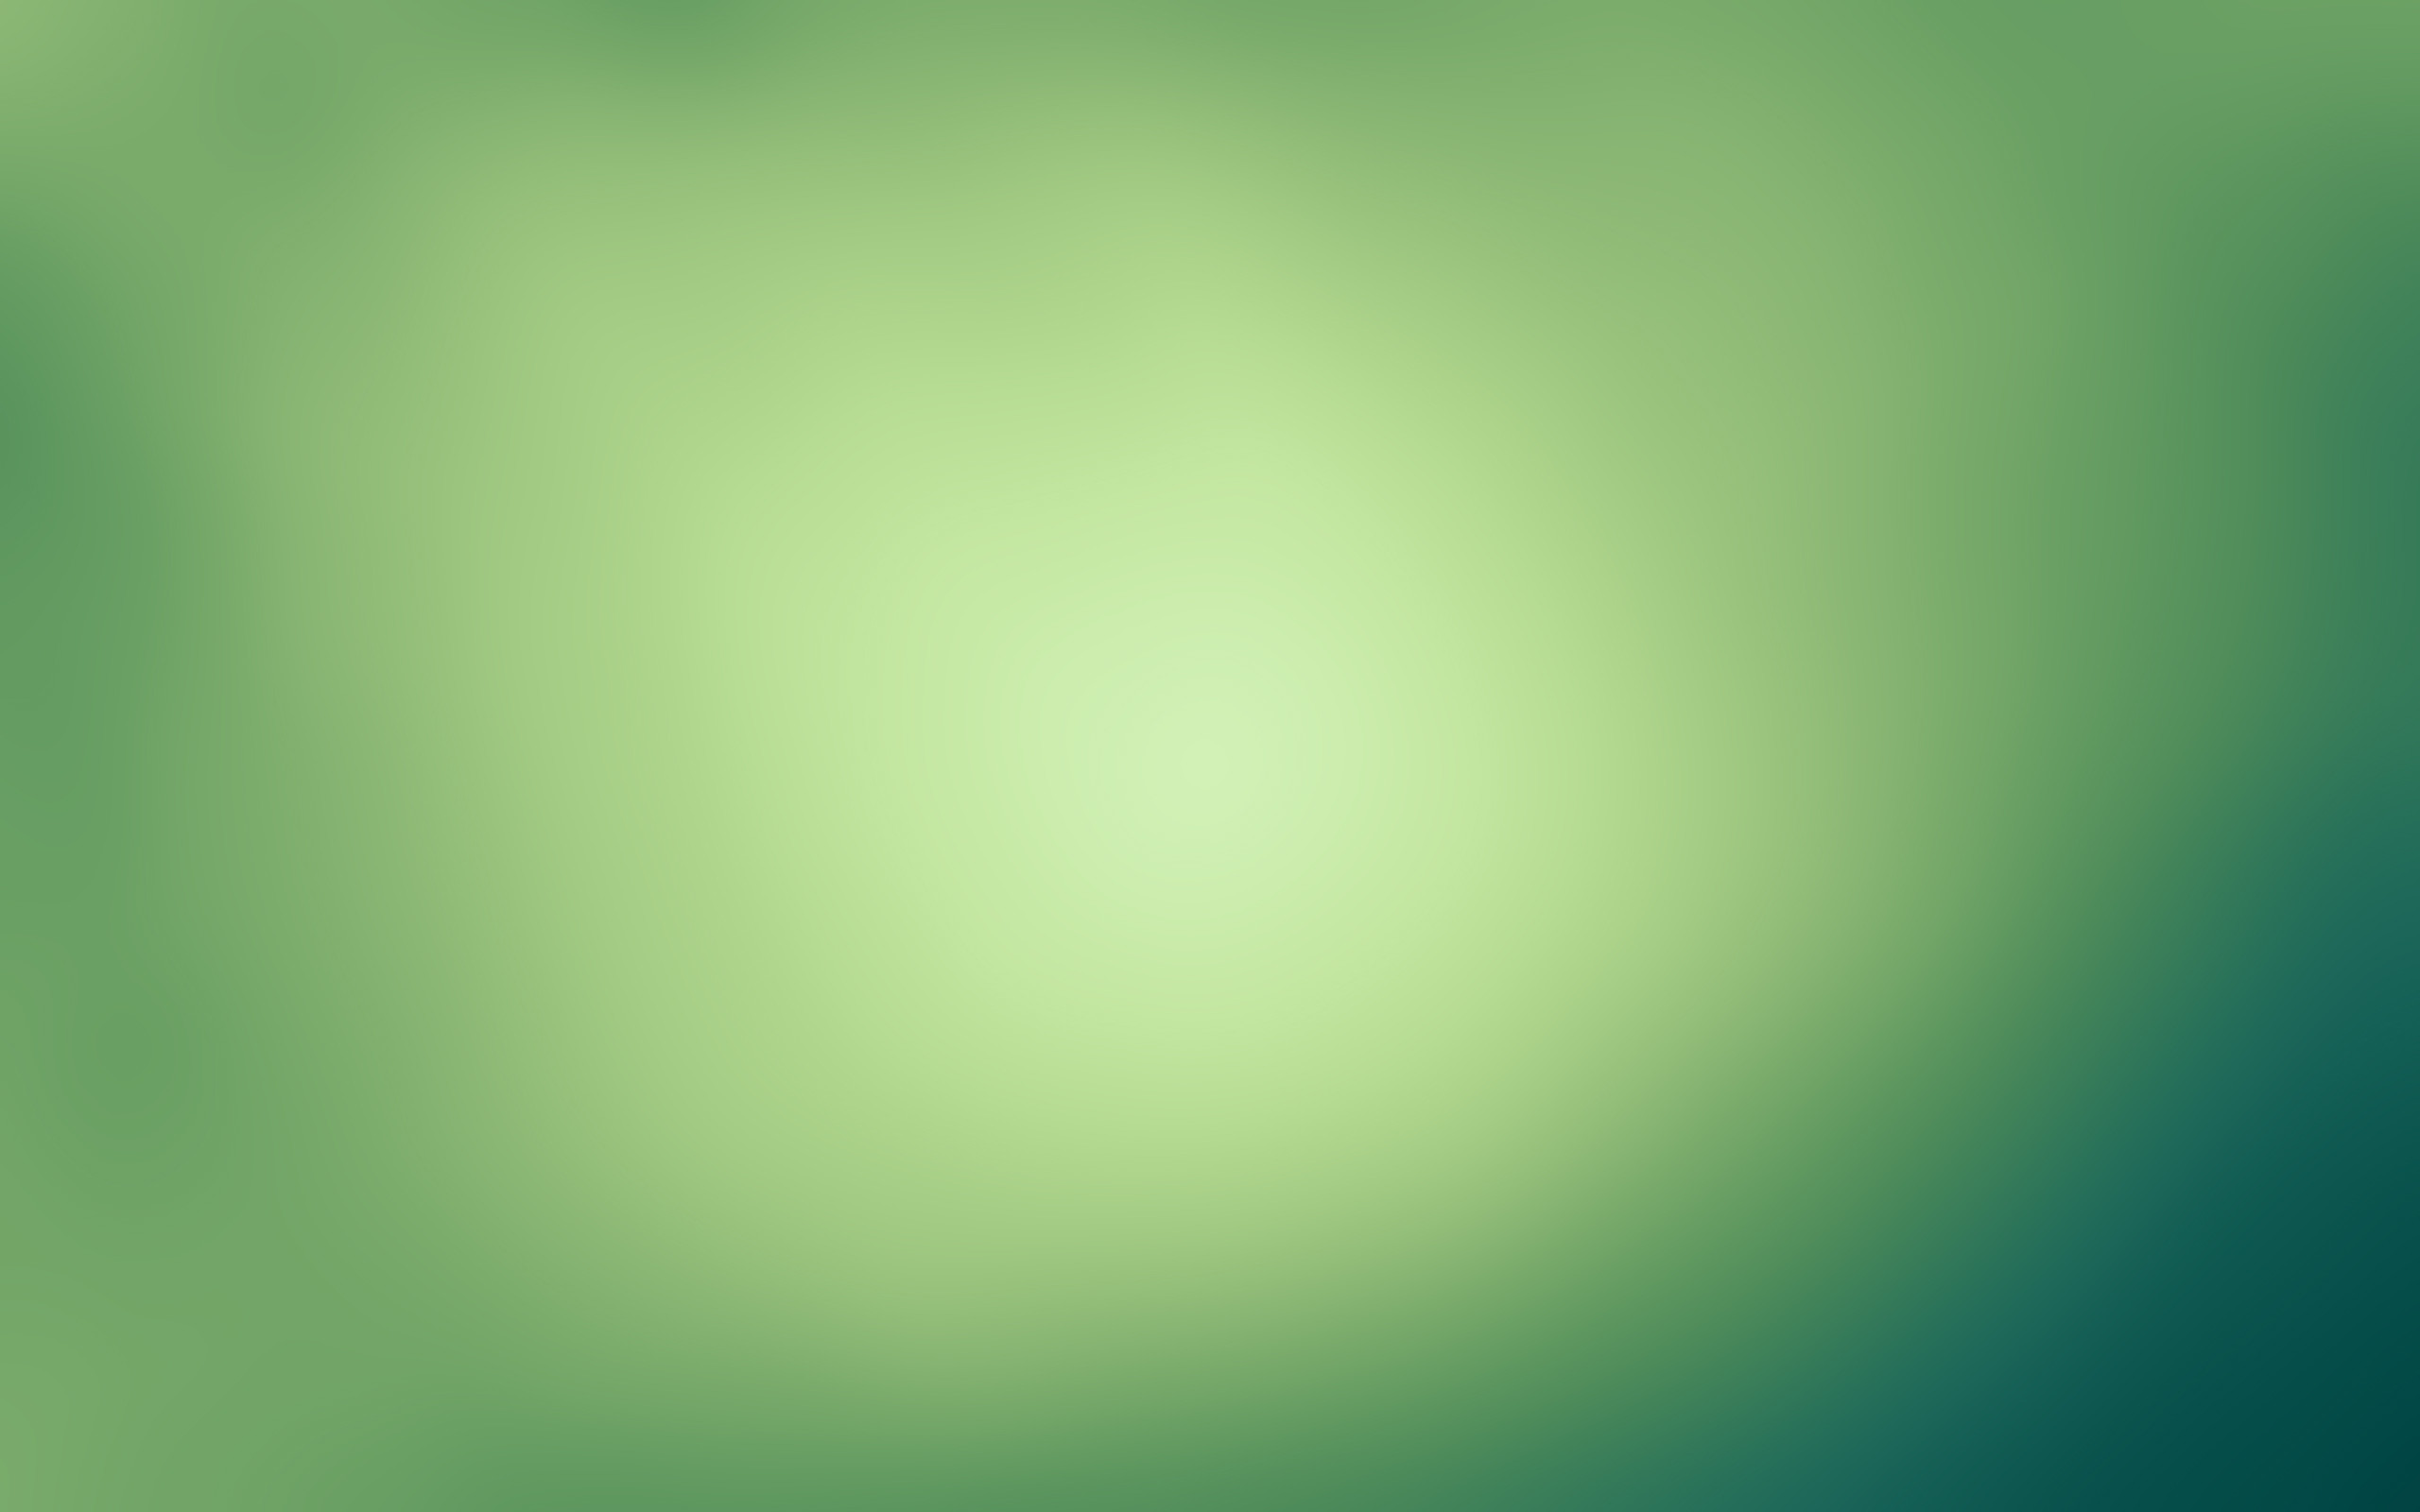 Free Solid Color Backgrounds | Green Color, Lightness and Darkness Differs,  Single Color Wallpaper